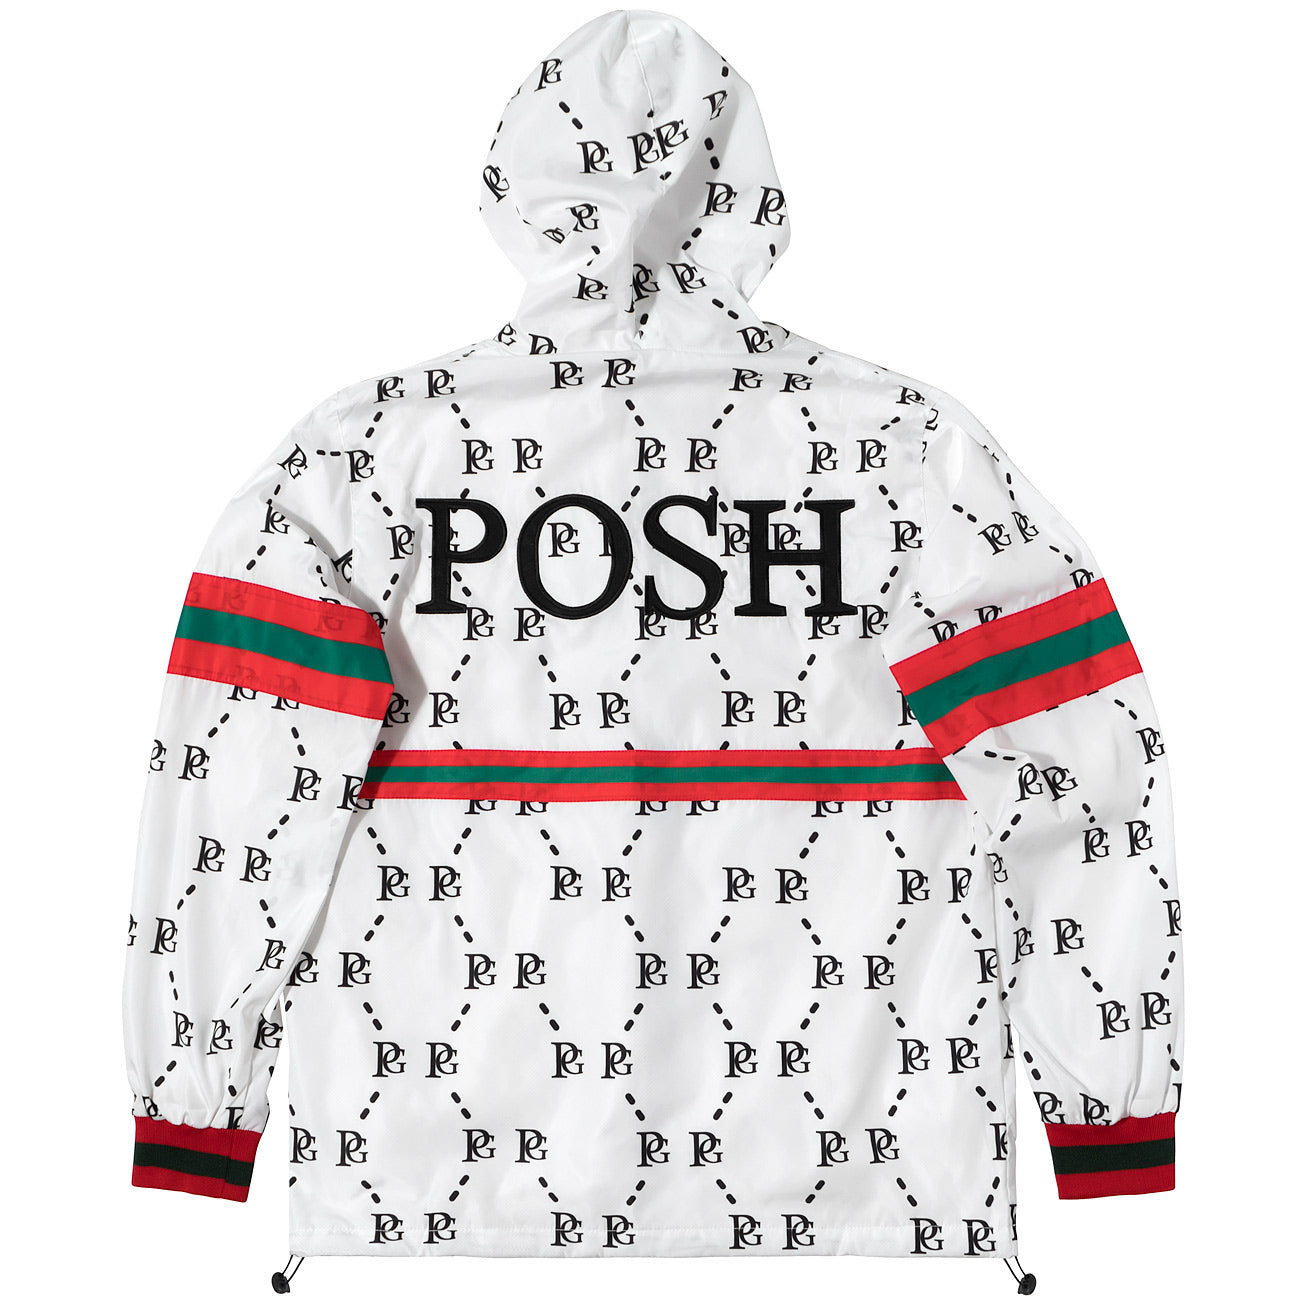 Posh PG Windbreaker Full Zip Jacket White - Trends Society